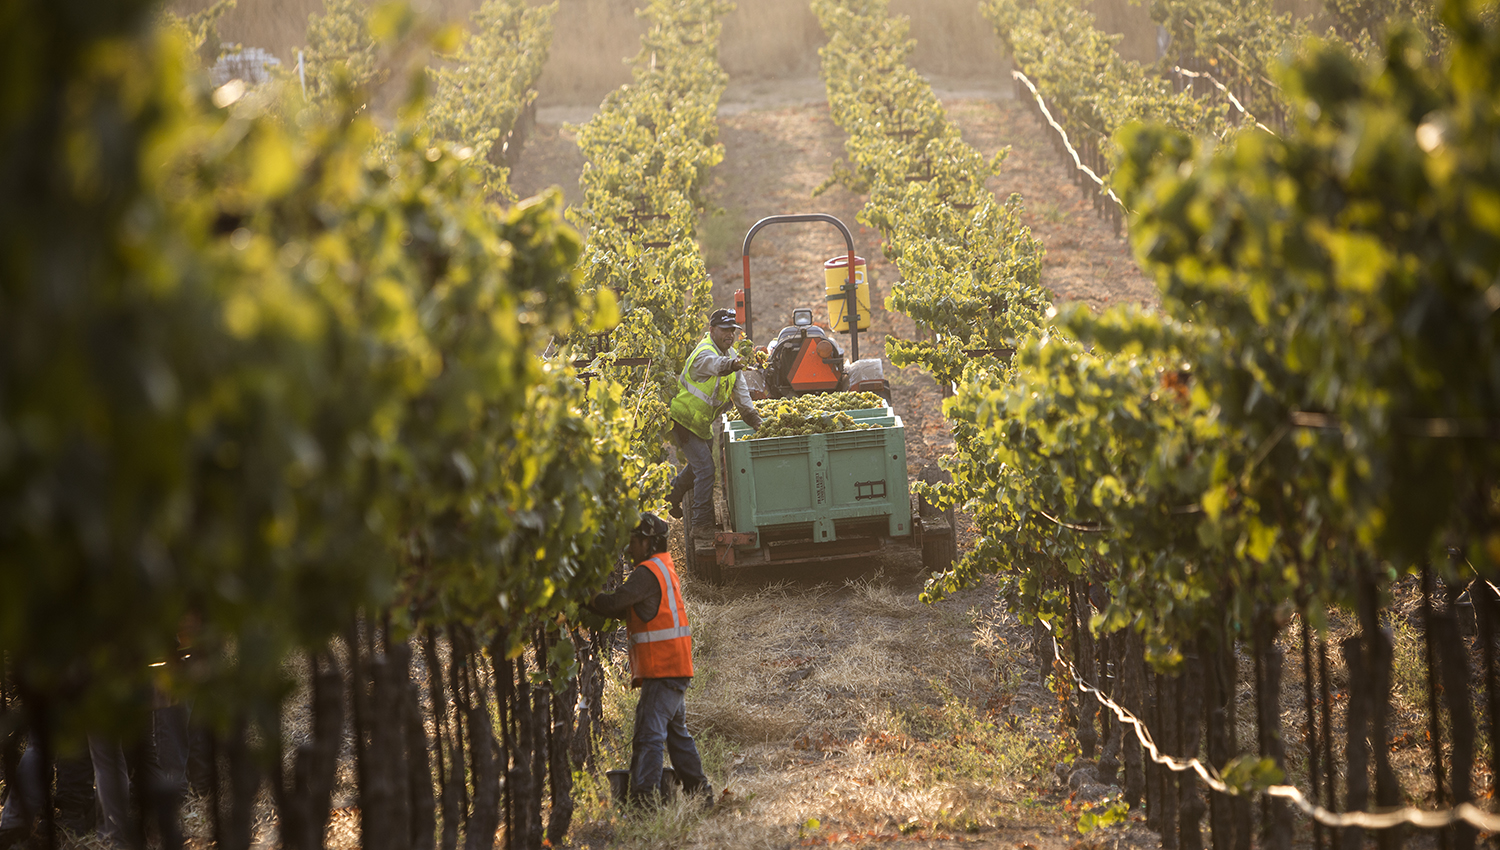 Workers at the Lewis Vineyard between grape vines